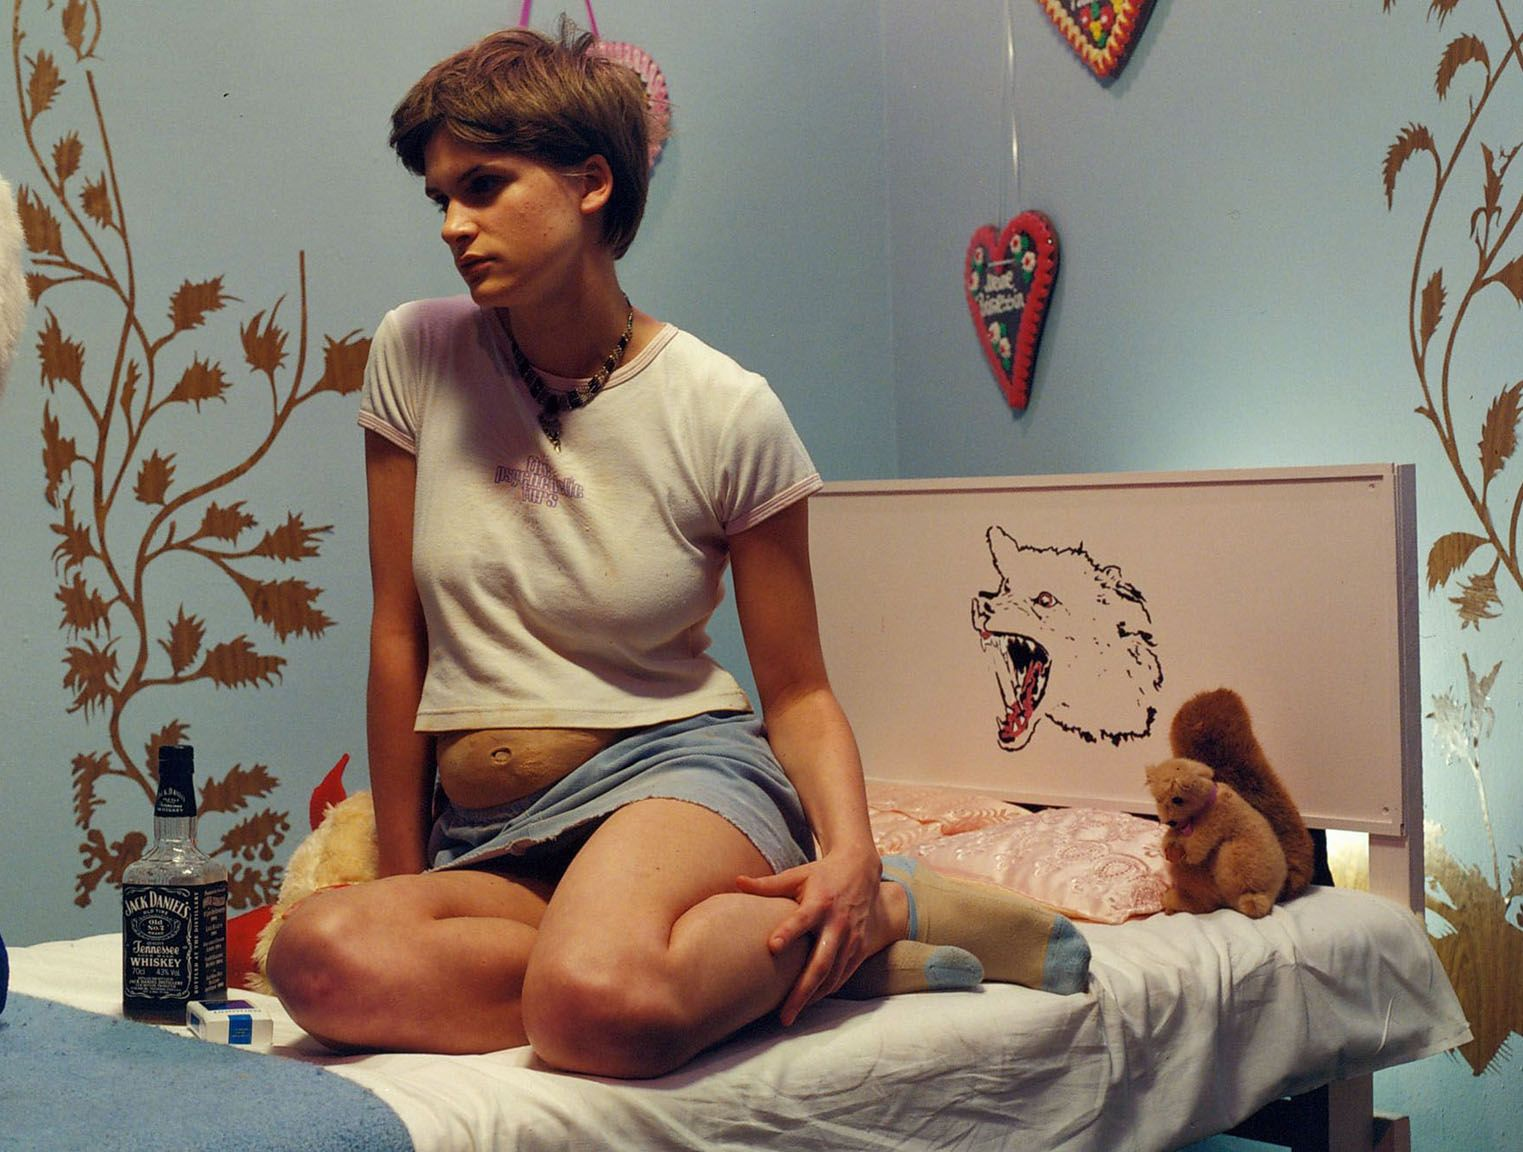 a photograph by sue de beer of a pregnant girl in a bedroom